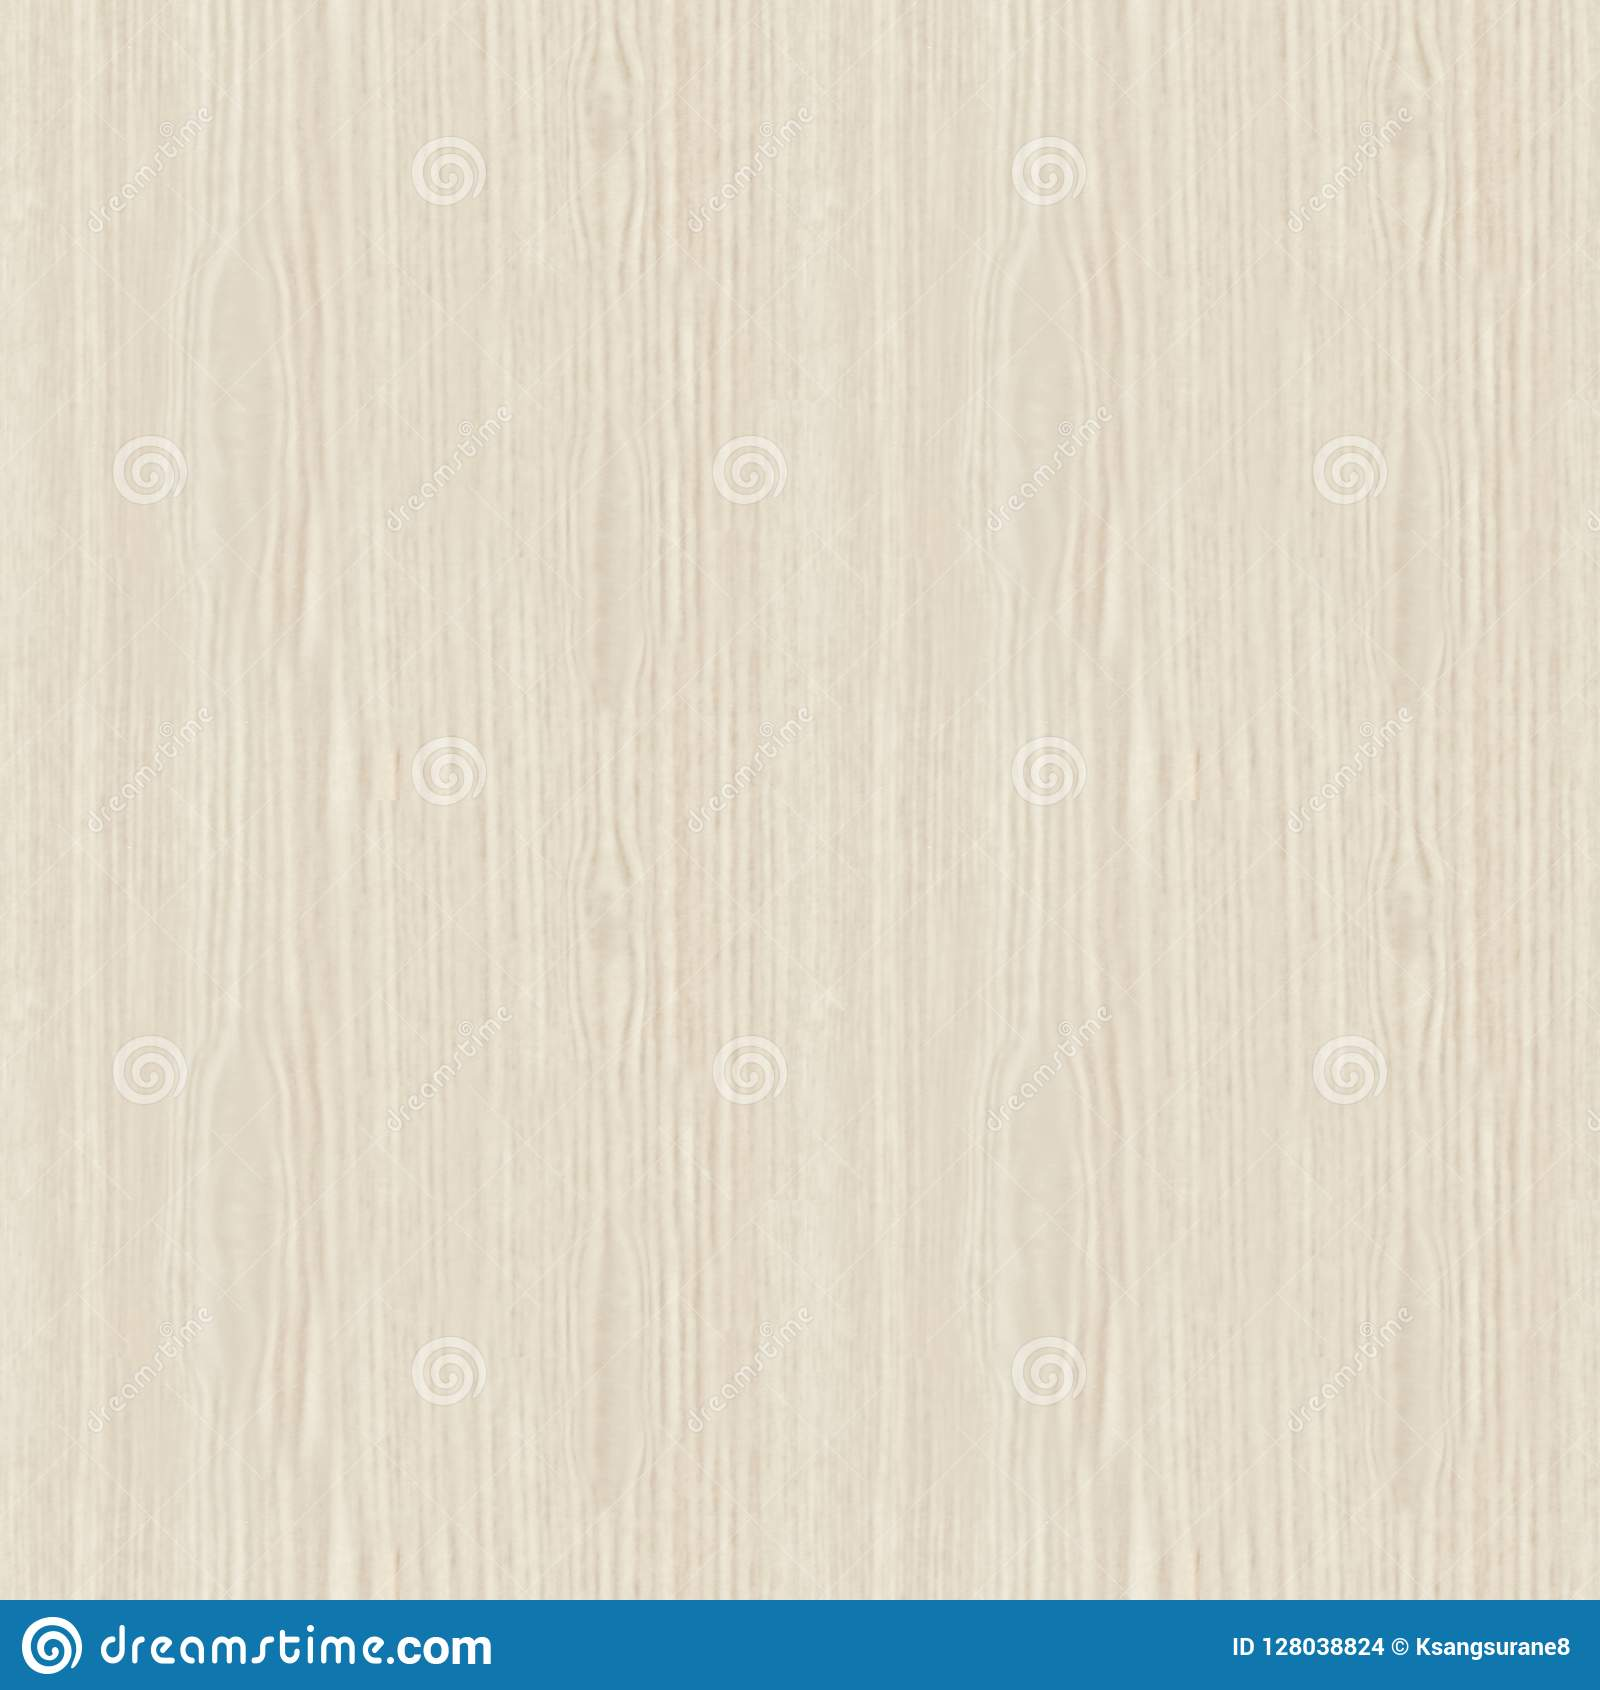 Seamless texture. White bleached oak pine wood pattern.